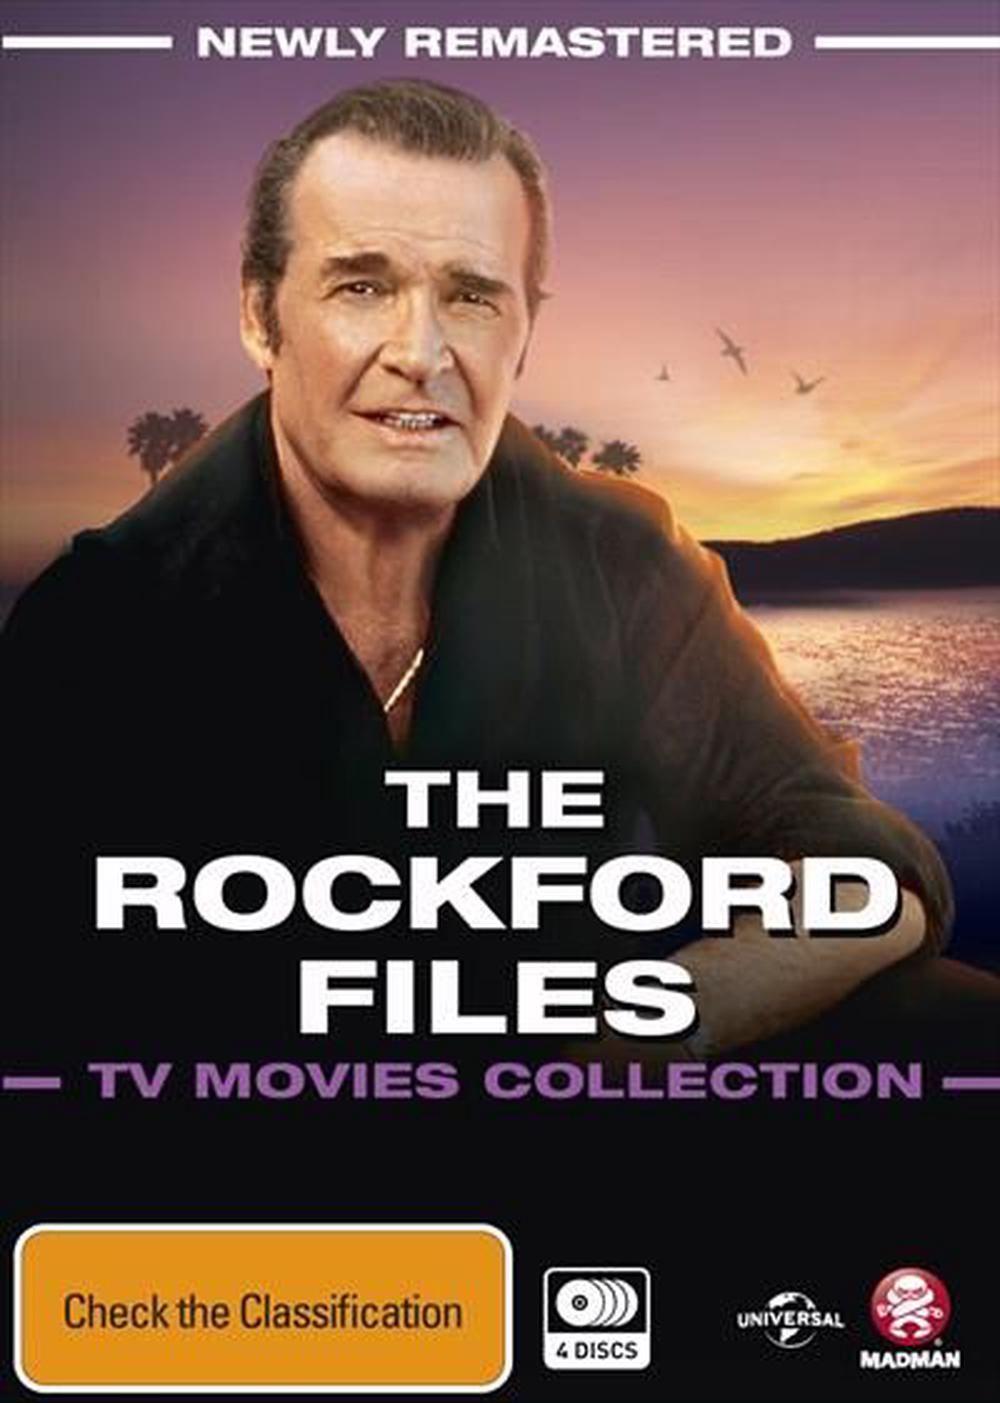 Rockford Files, The - TV Movies : Remastered | Collection